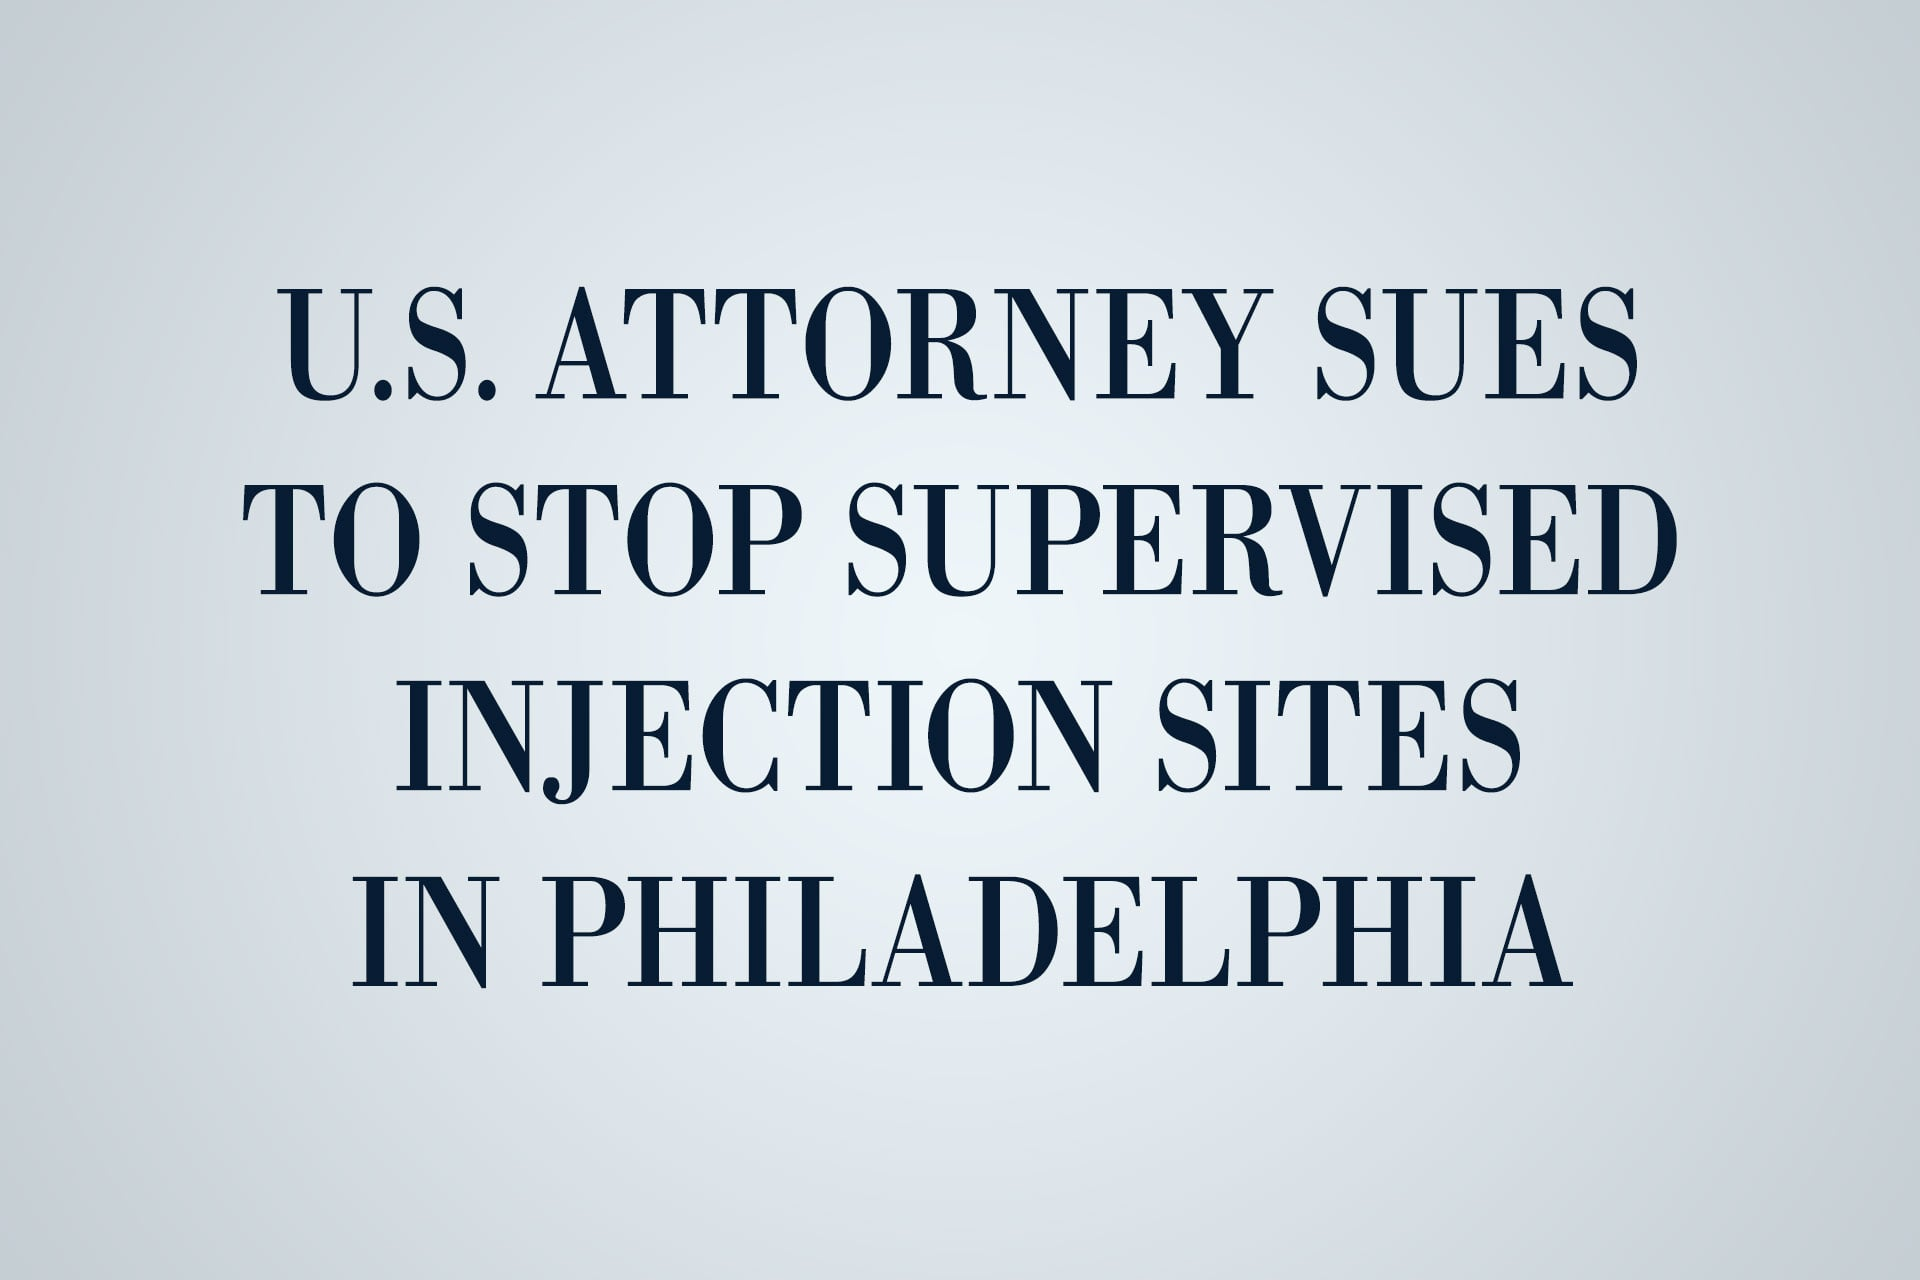 U.S. attorney sues to stop supervised injection sites in Philadelphia